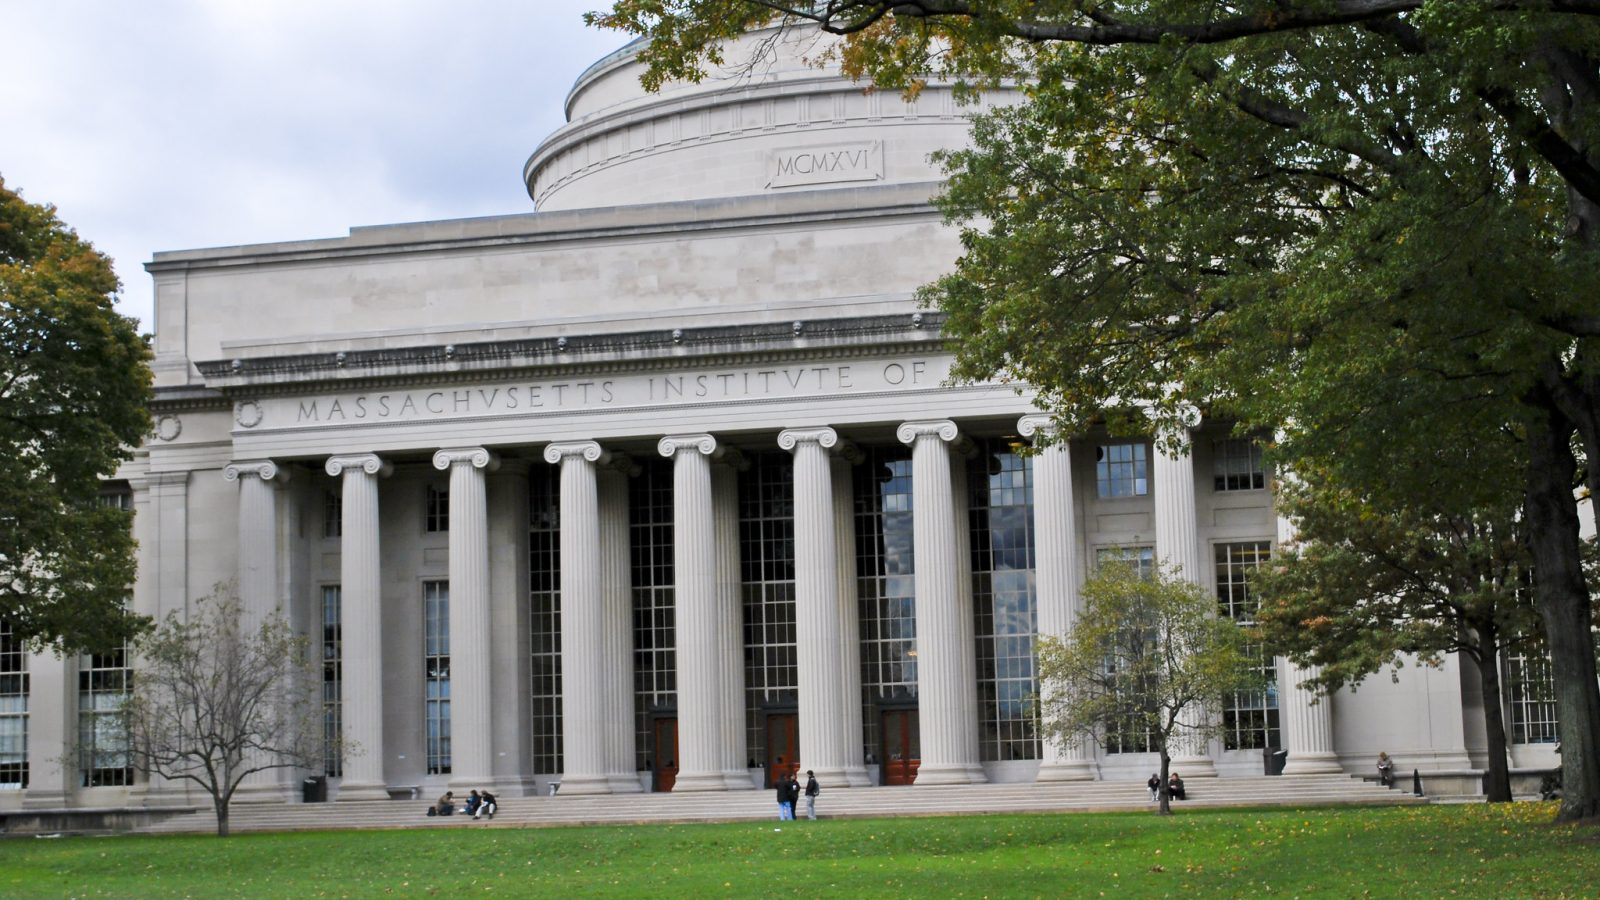 The Maclaurin Building at MIT